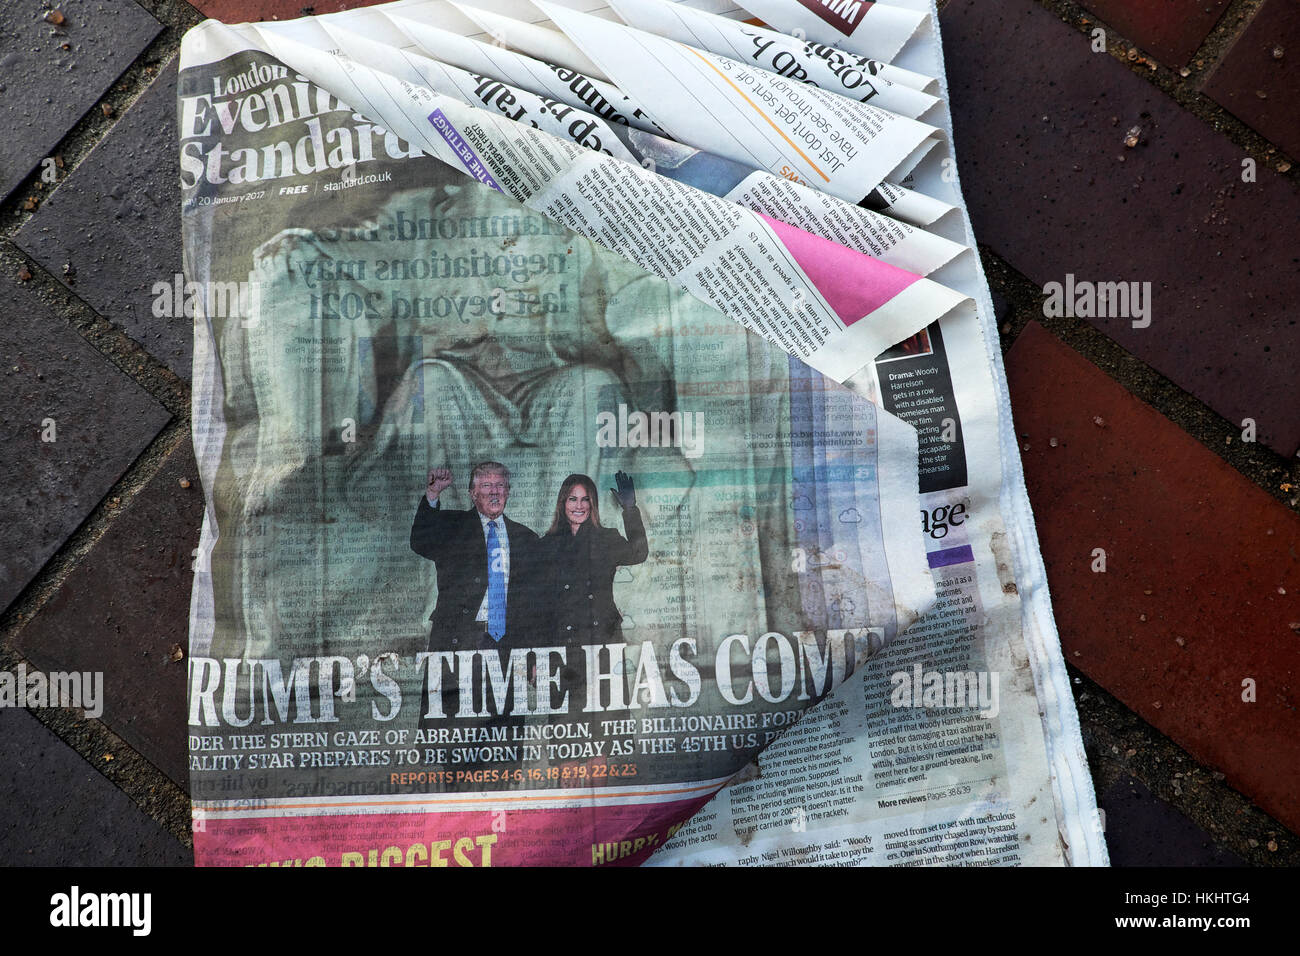 An old wet Sunday newspaper lies on the pavement in London after Donald Trump's inauguration ceremony in January - Stock Image